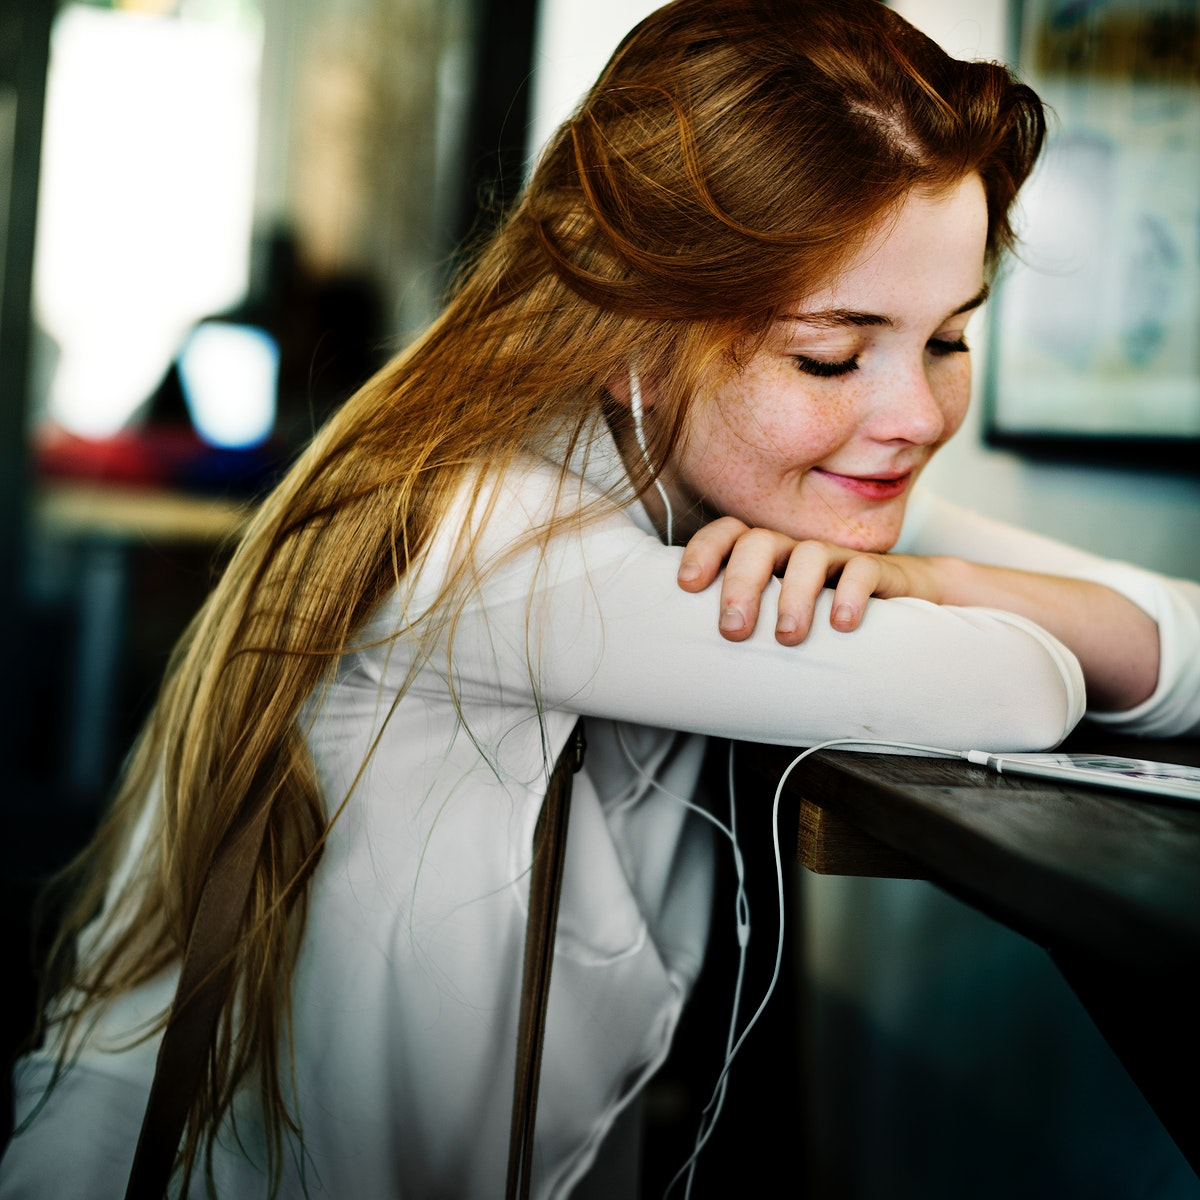 Young caucasian woman sitting listening to music